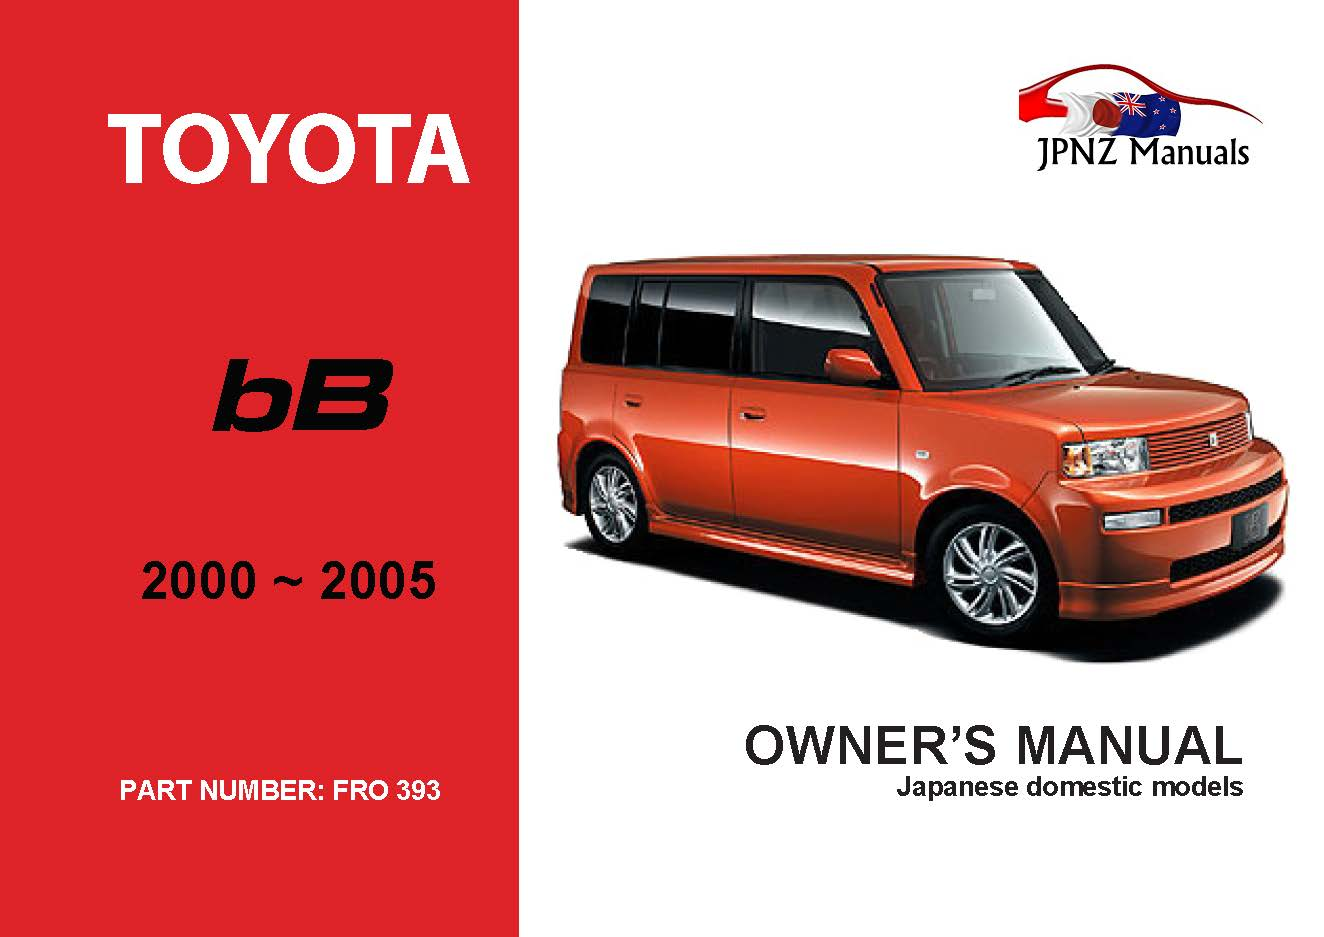 Toyota - bB Car Owners User Manual In English | 2000 - 2005